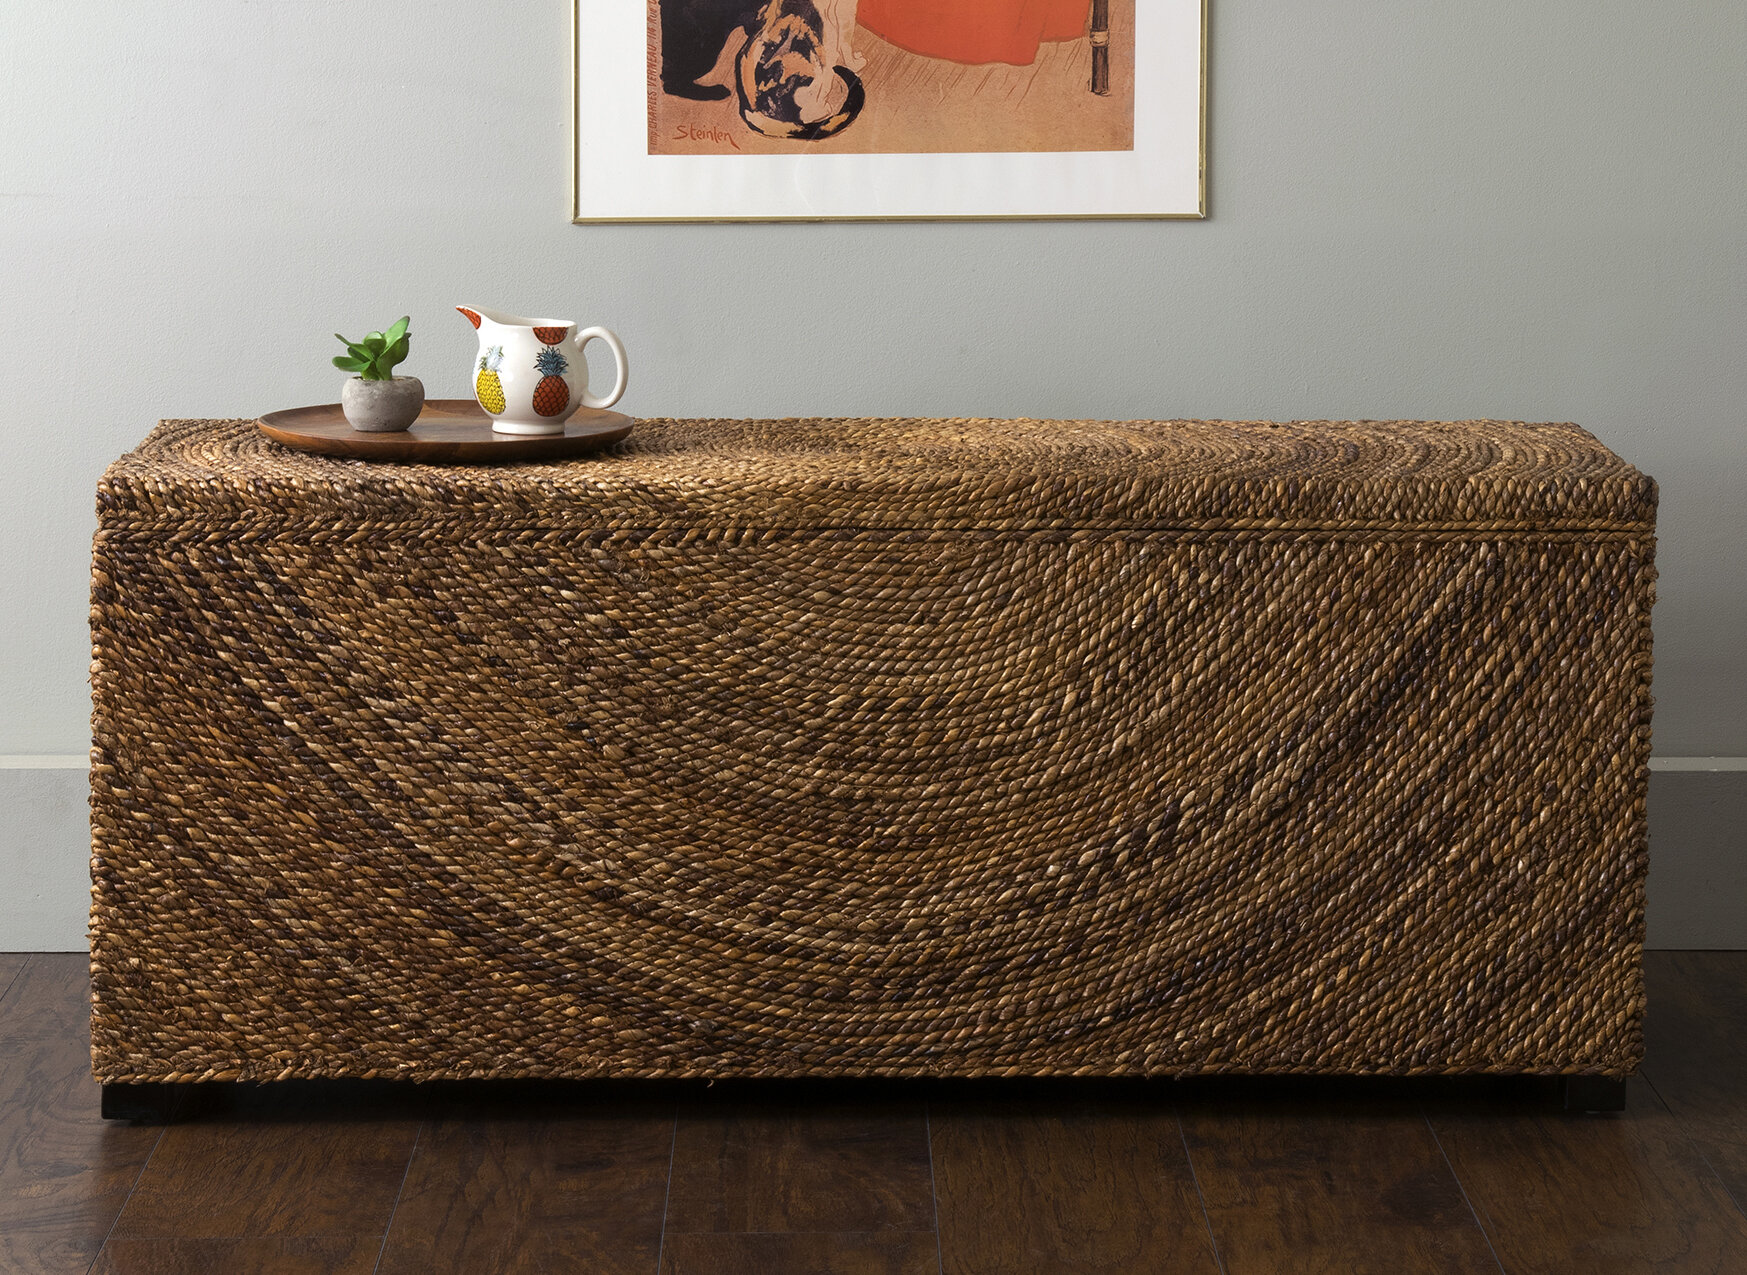 Swell Wilmer Wood Storage Bench Creativecarmelina Interior Chair Design Creativecarmelinacom